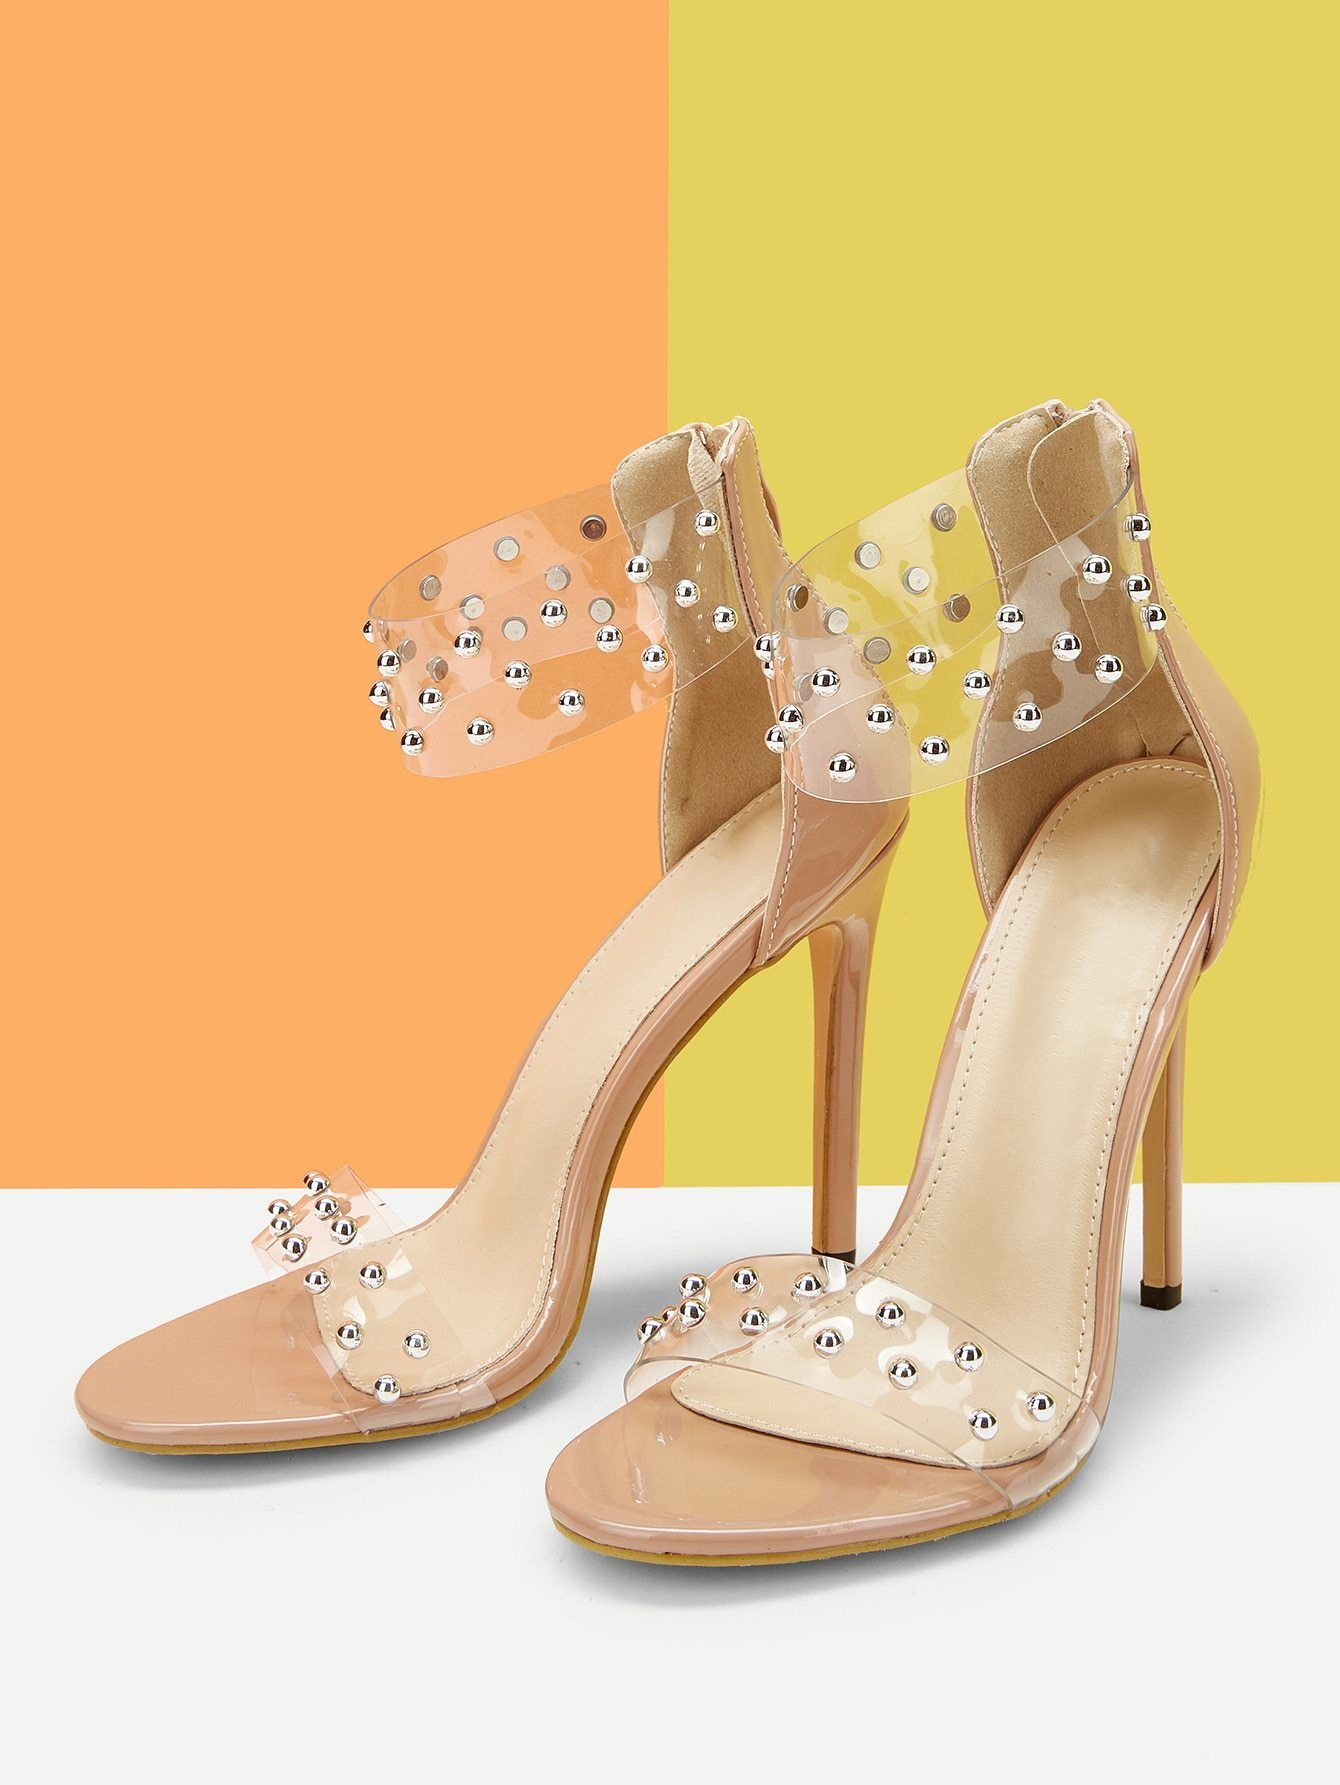 9049a1f995f Studded Decor Clear Band Stiletto Heels in 2019 | Heels Pumps ...